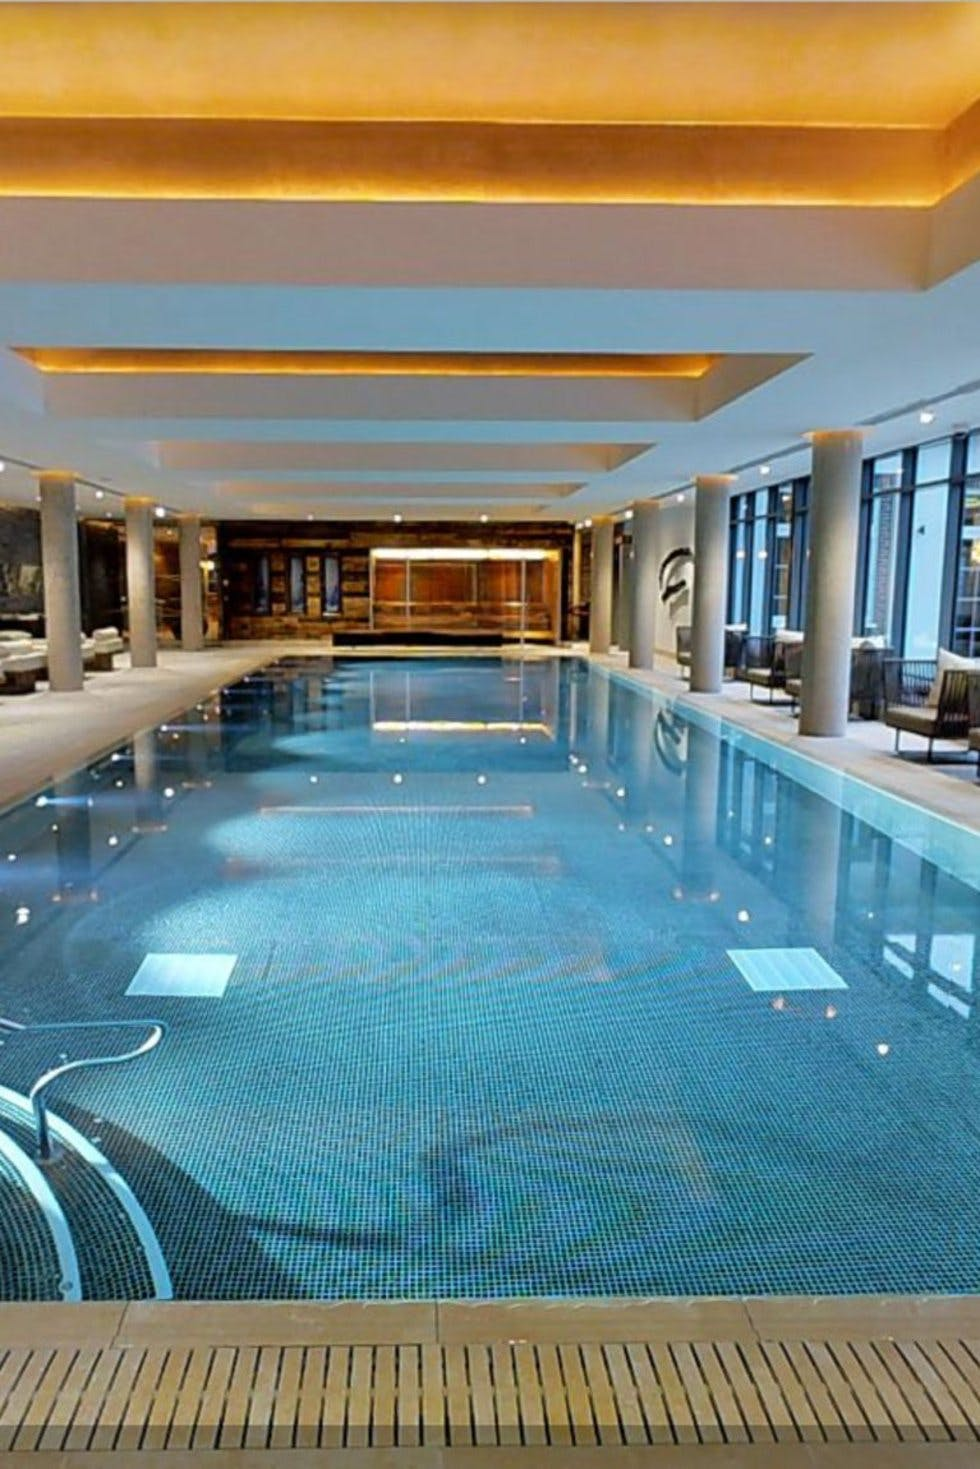 Best Spa Hotel Breaks In The Uk A Guide To The Uk 39 S Most Luxurious Retreats Stylist